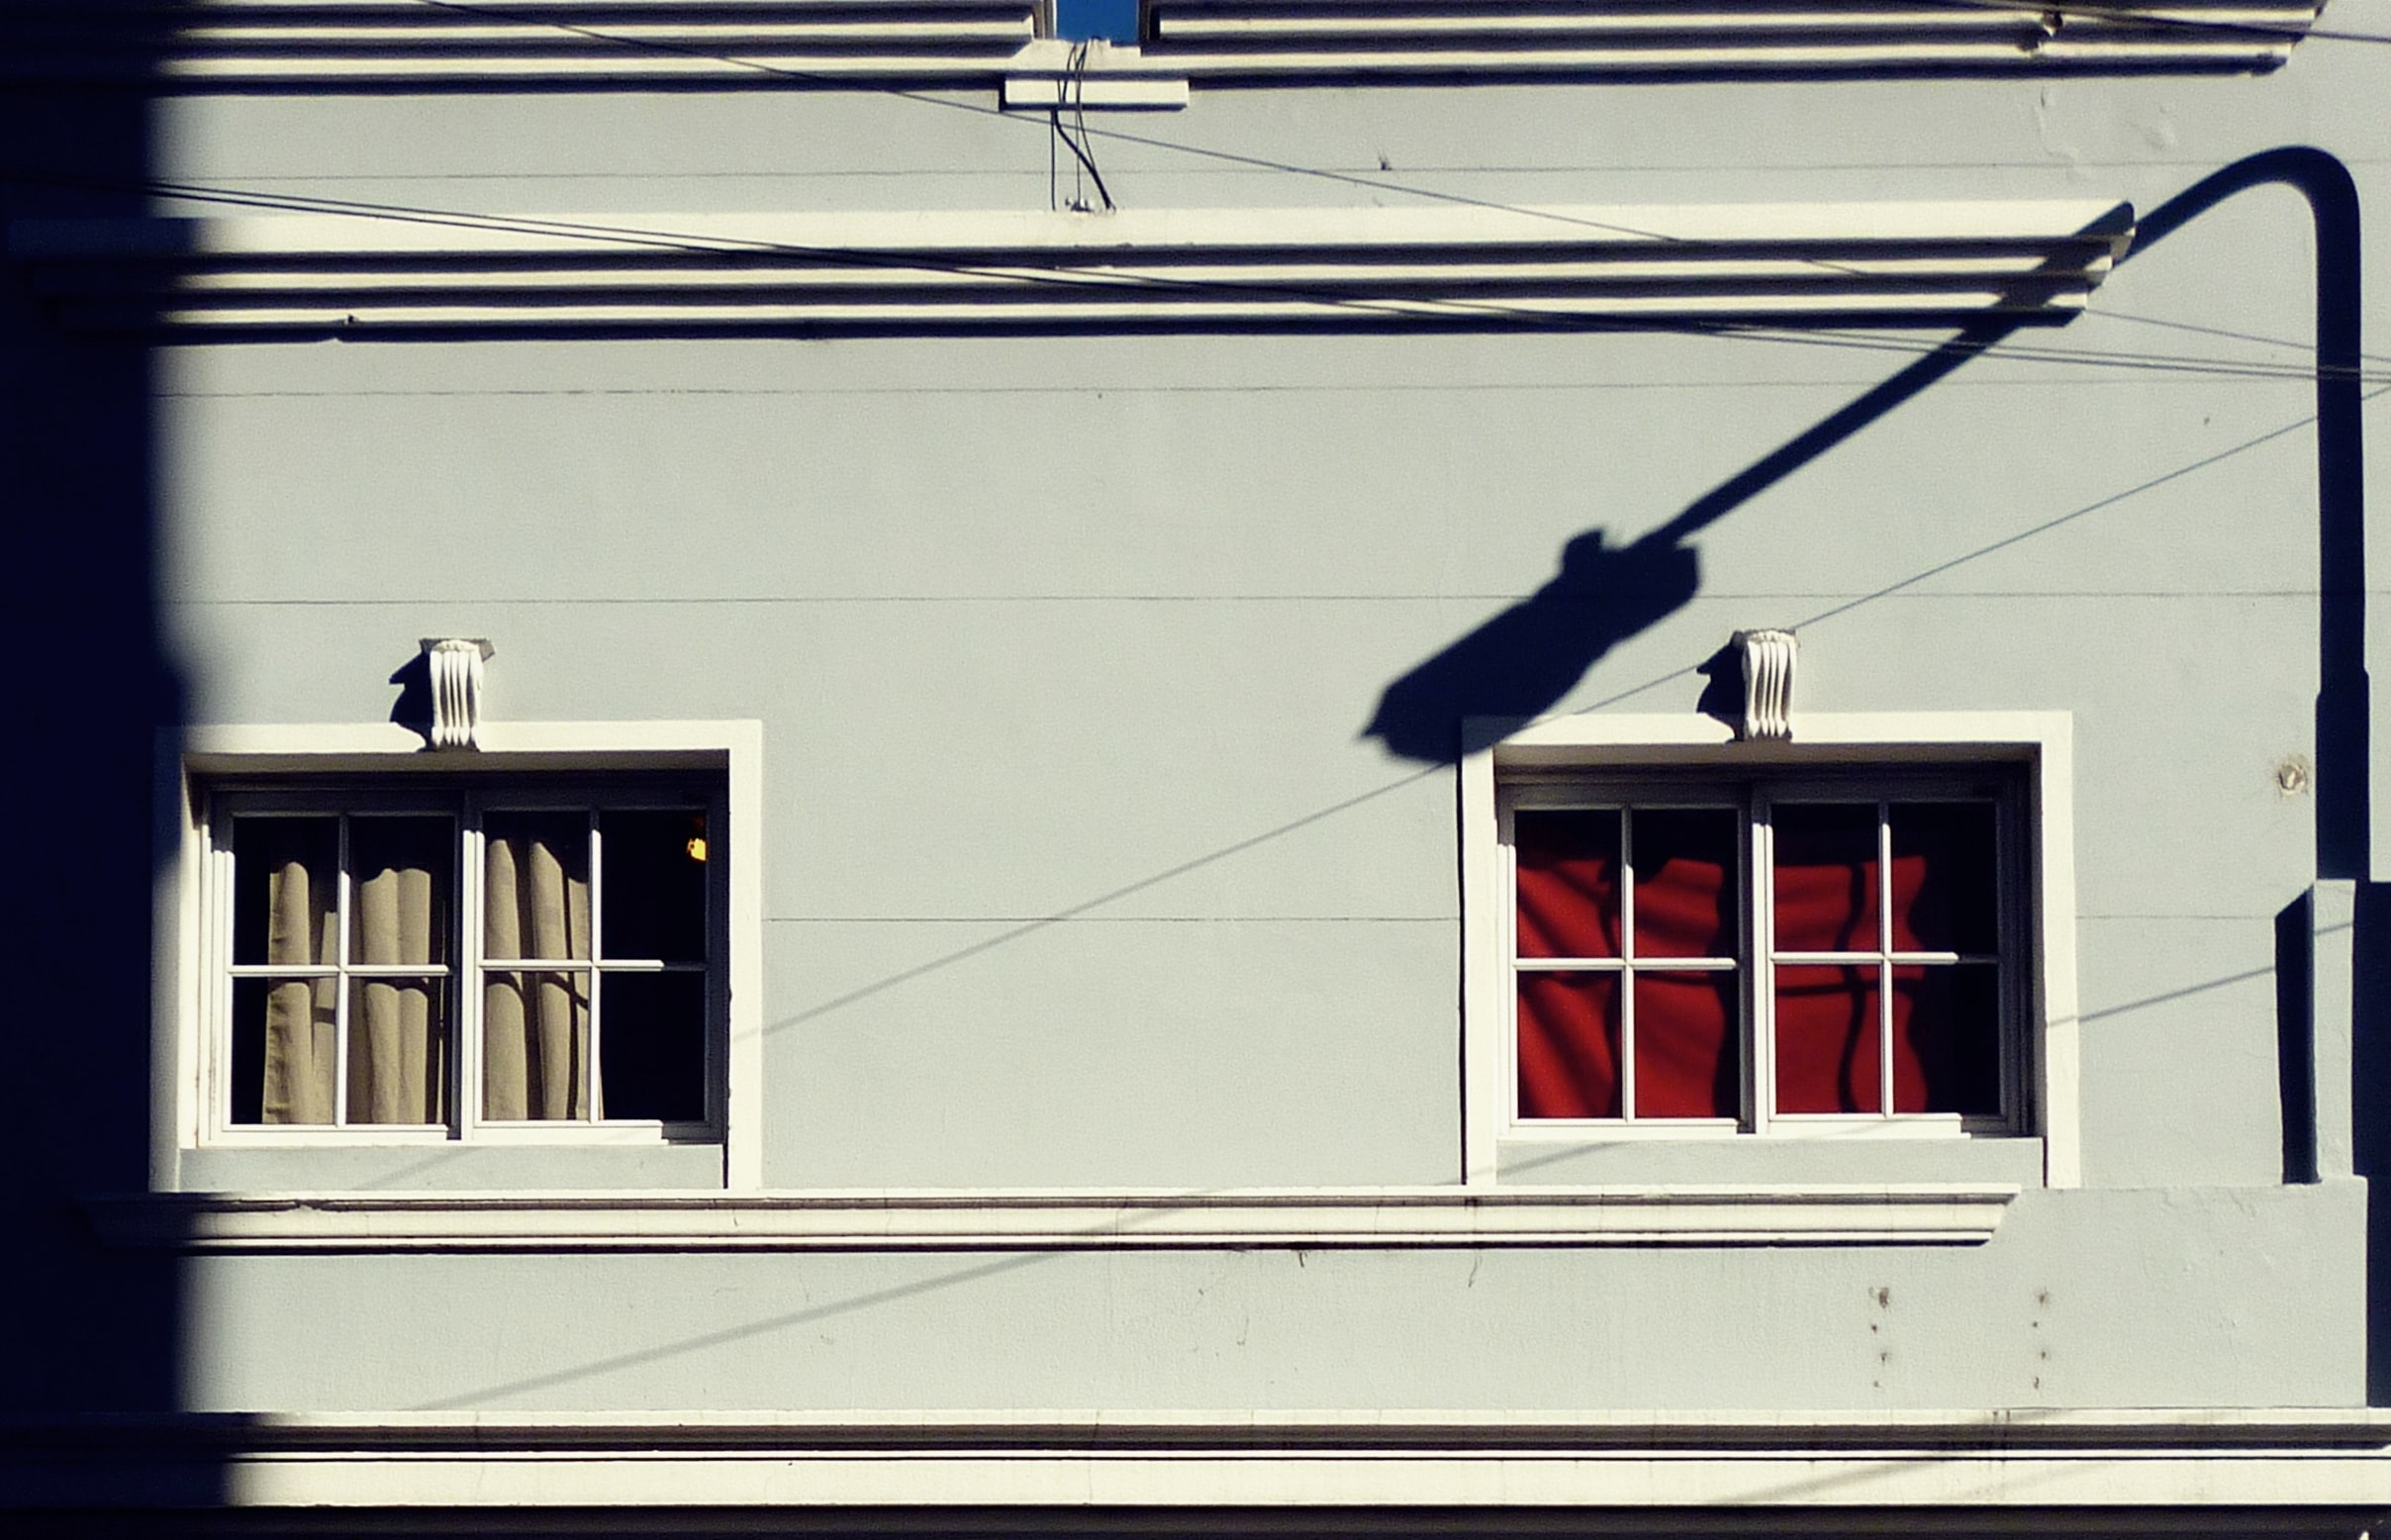 A long lamppost shadow on the wall of a building with two small windows